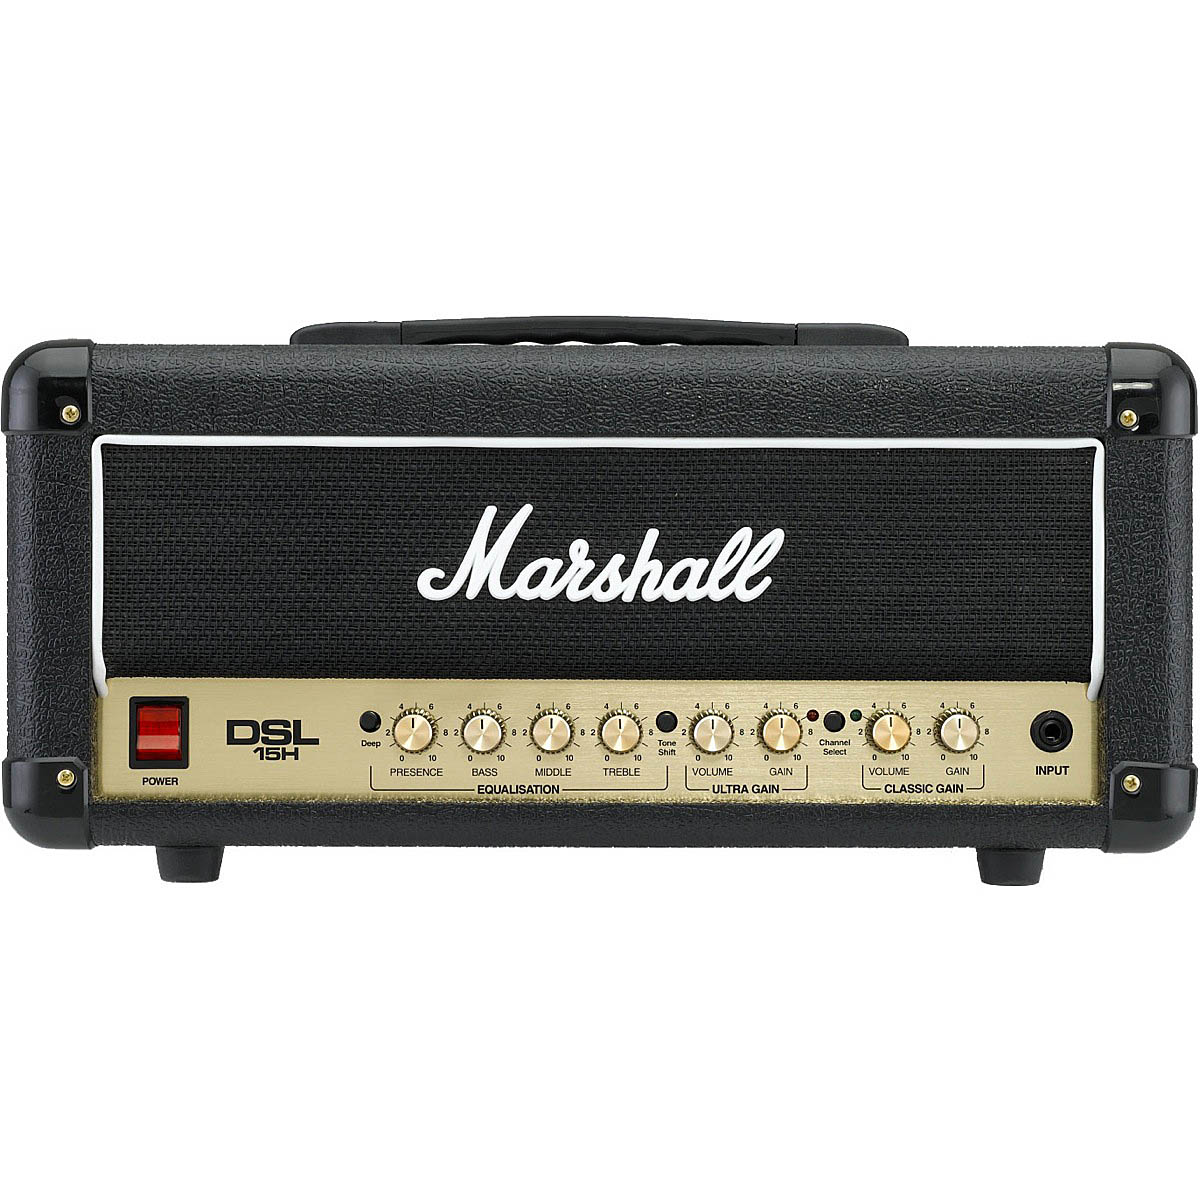 Tube Amp Head : marshall dsl15h 15 watt tube guitar amp head discontinued sonic circus ~ Hamham.info Haus und Dekorationen